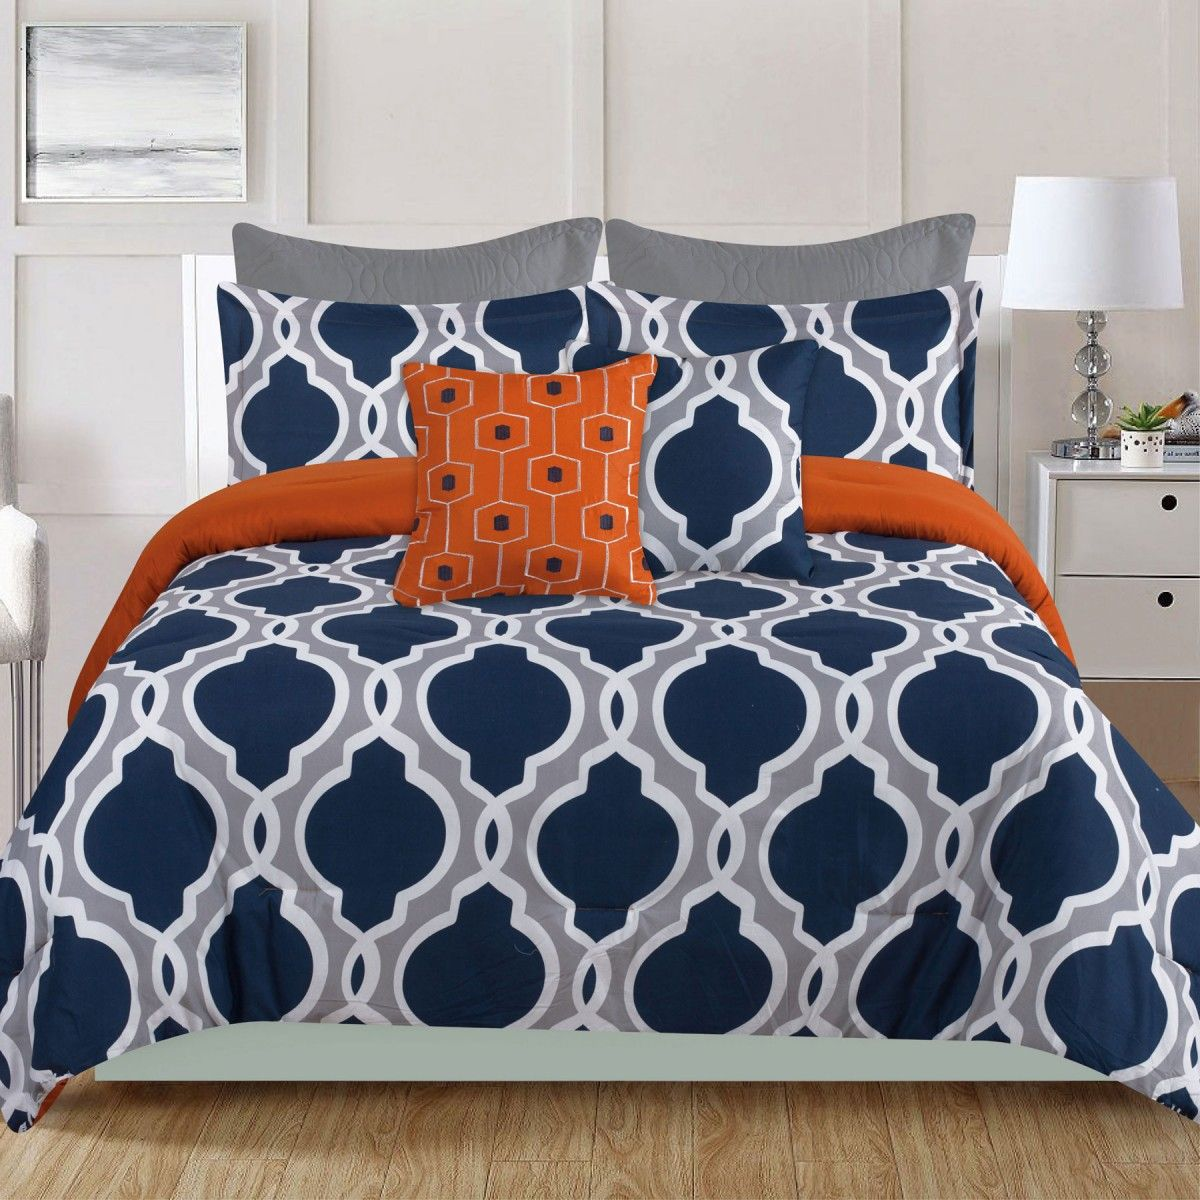 crest home ellen westbury  piece king comforter bedding set navy  - crest home ellen westbury  piece king comforter bedding set navy blue andgrey quatrefoil